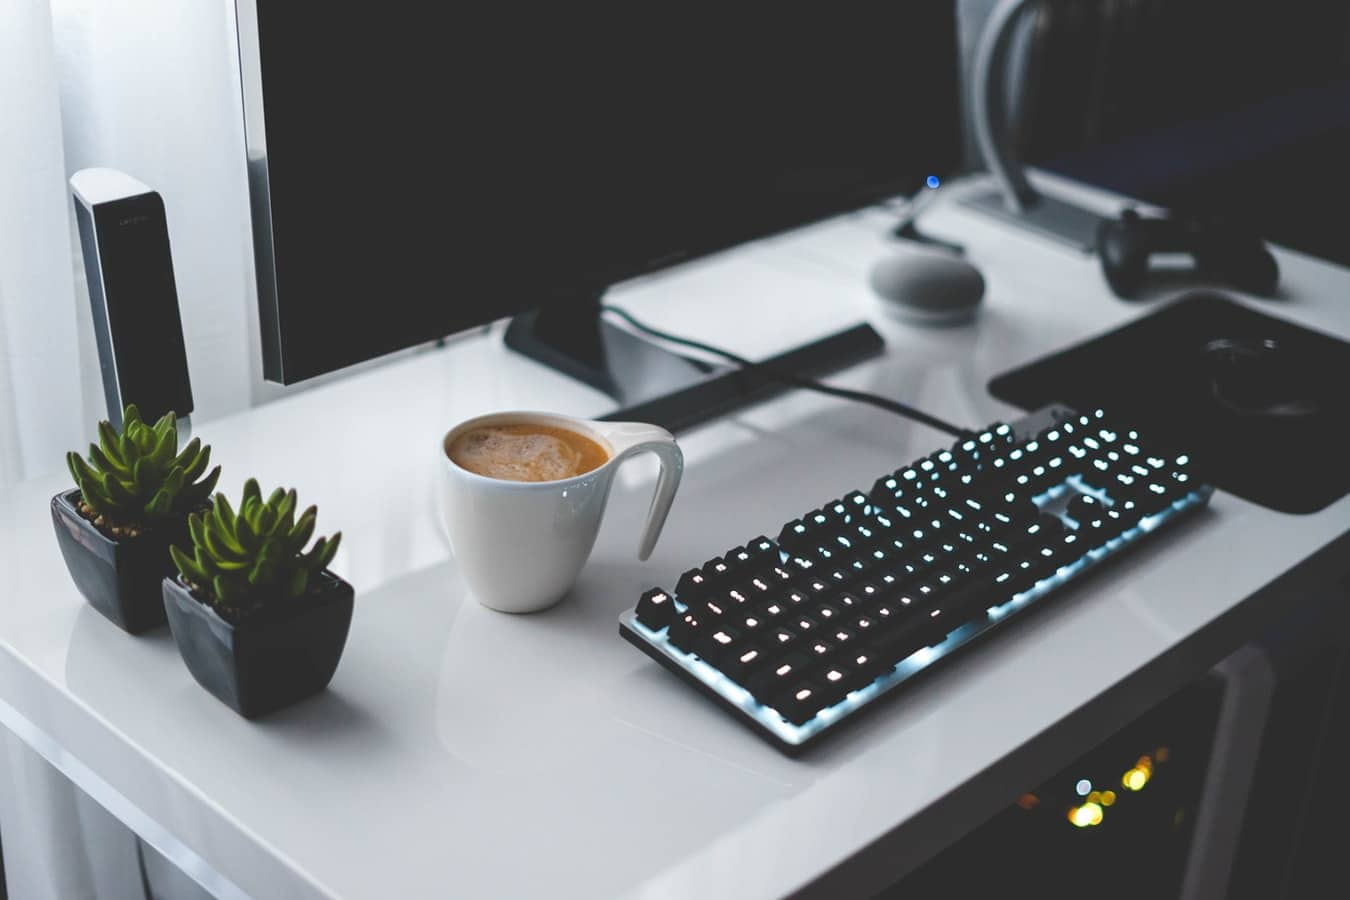 7 Best Budget Gaming Keyboard From Aliexpress Under 50